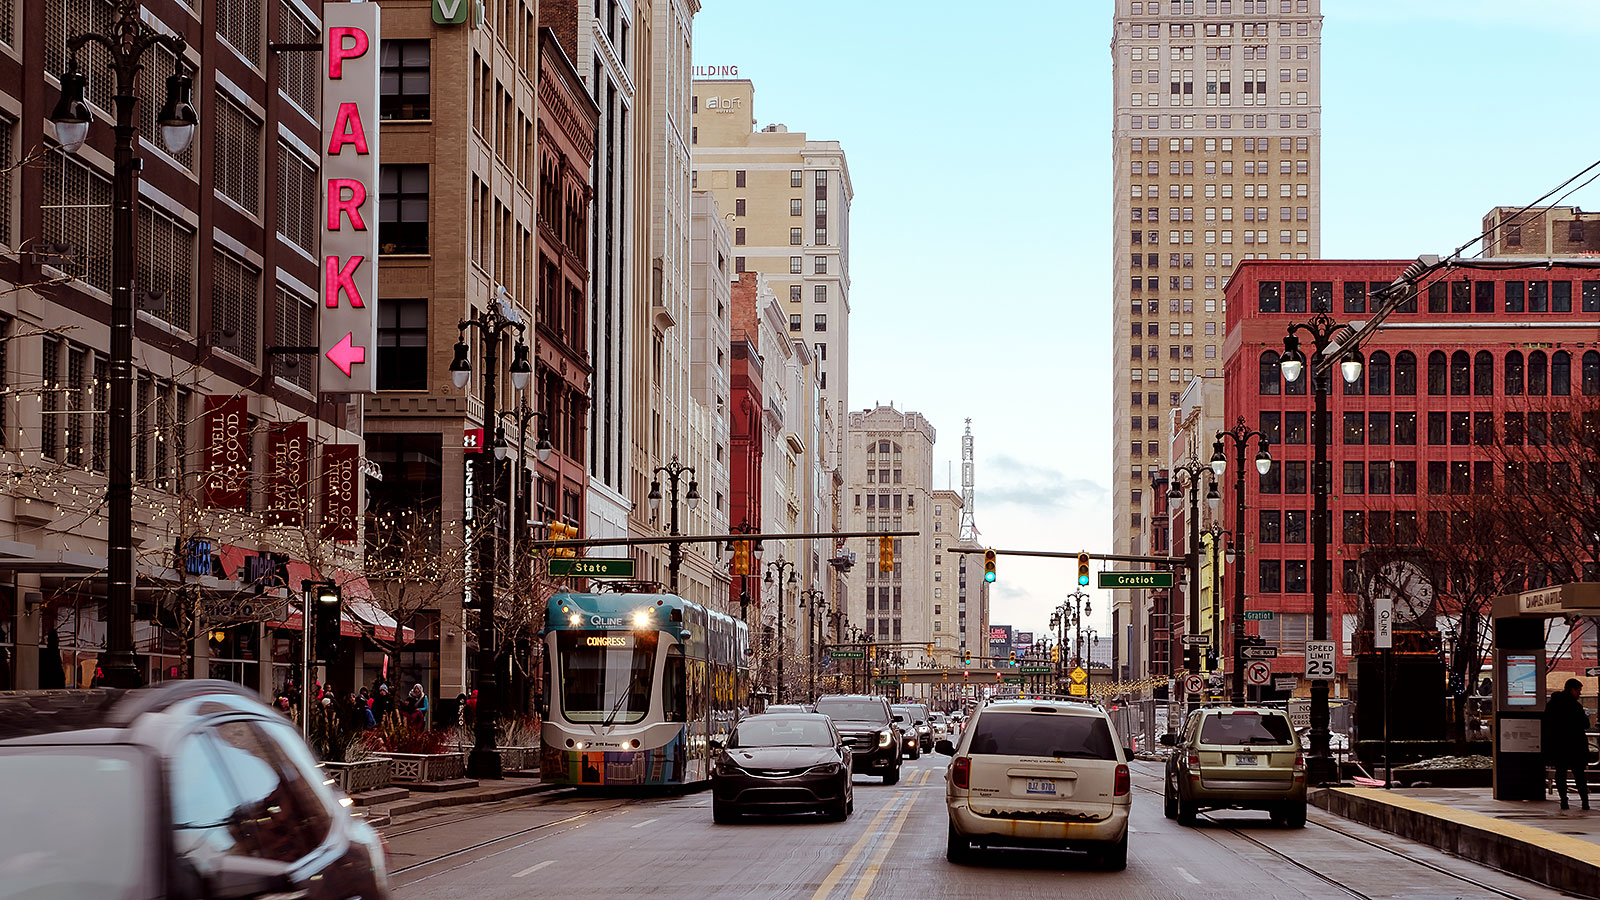 This is the worst city to drive in, according to a survey